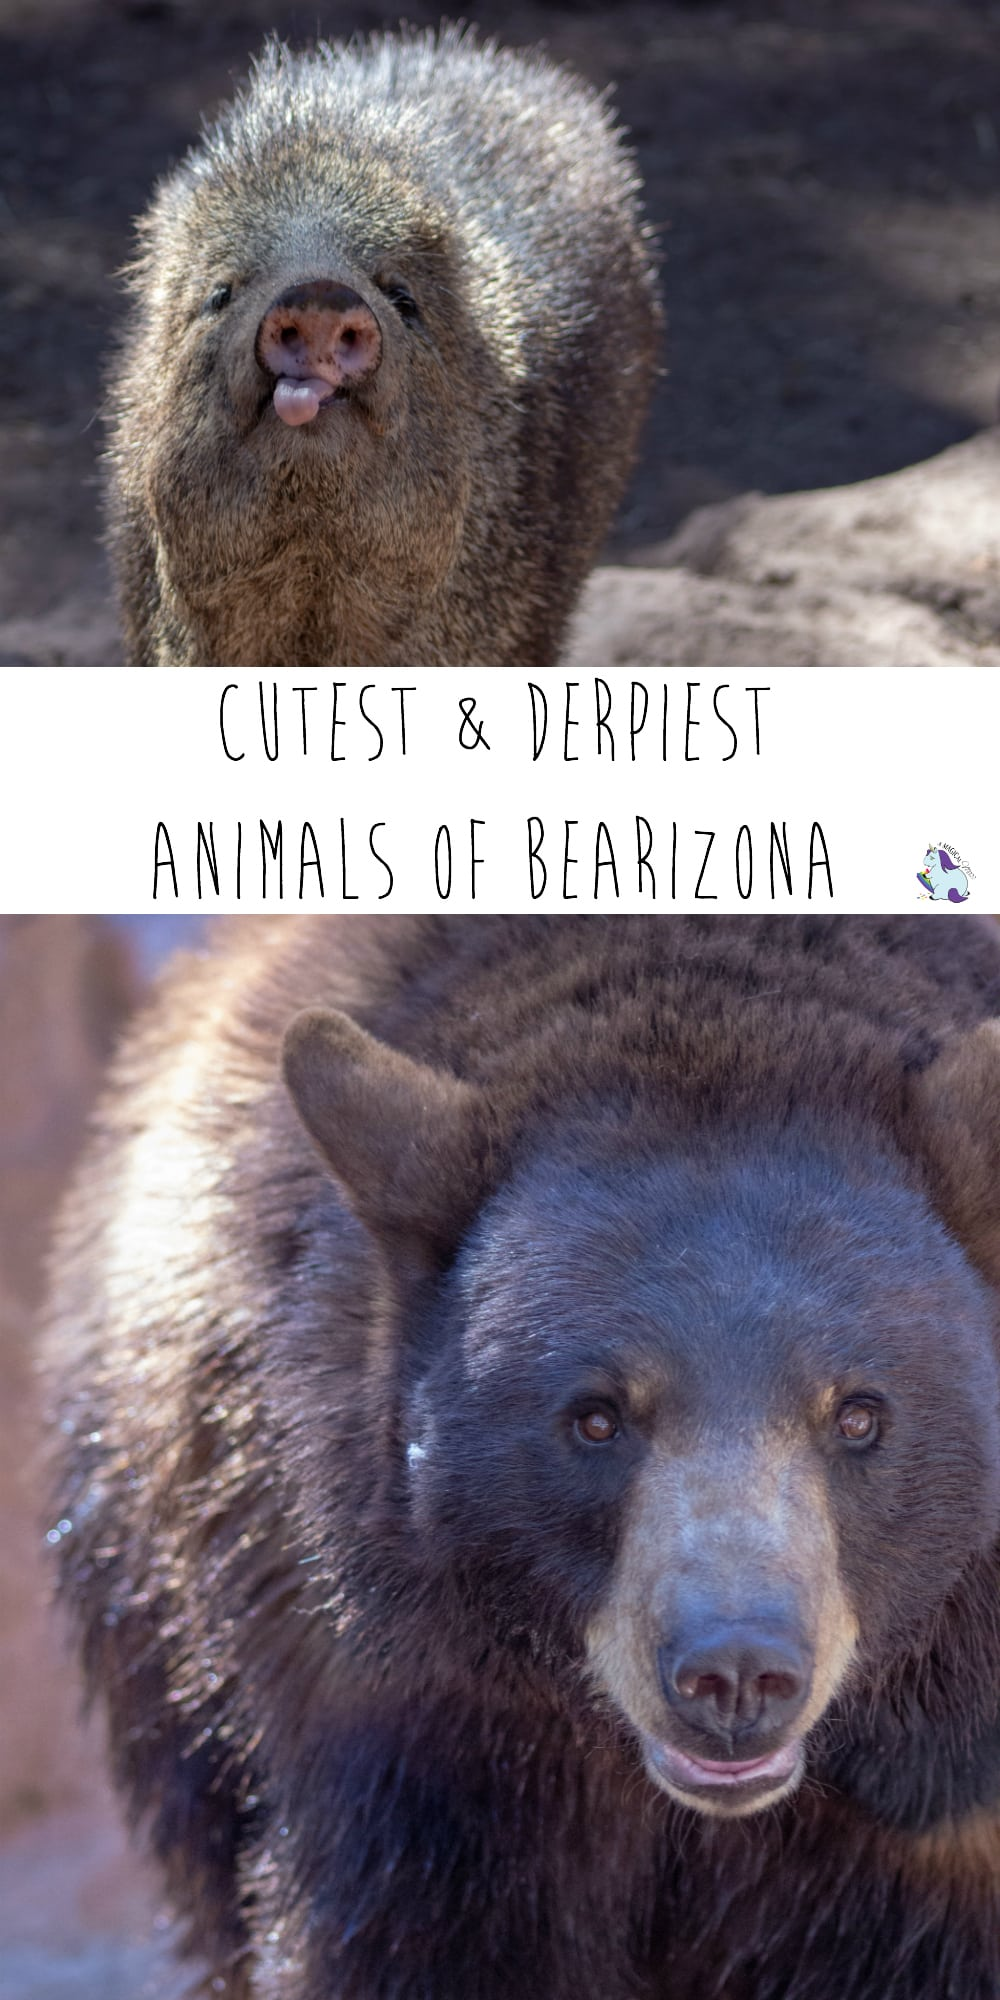 The Cutest and Derpiest Animals of Bearizona #Berizona #Arizona #travel #familyfun #animals #cute #funny